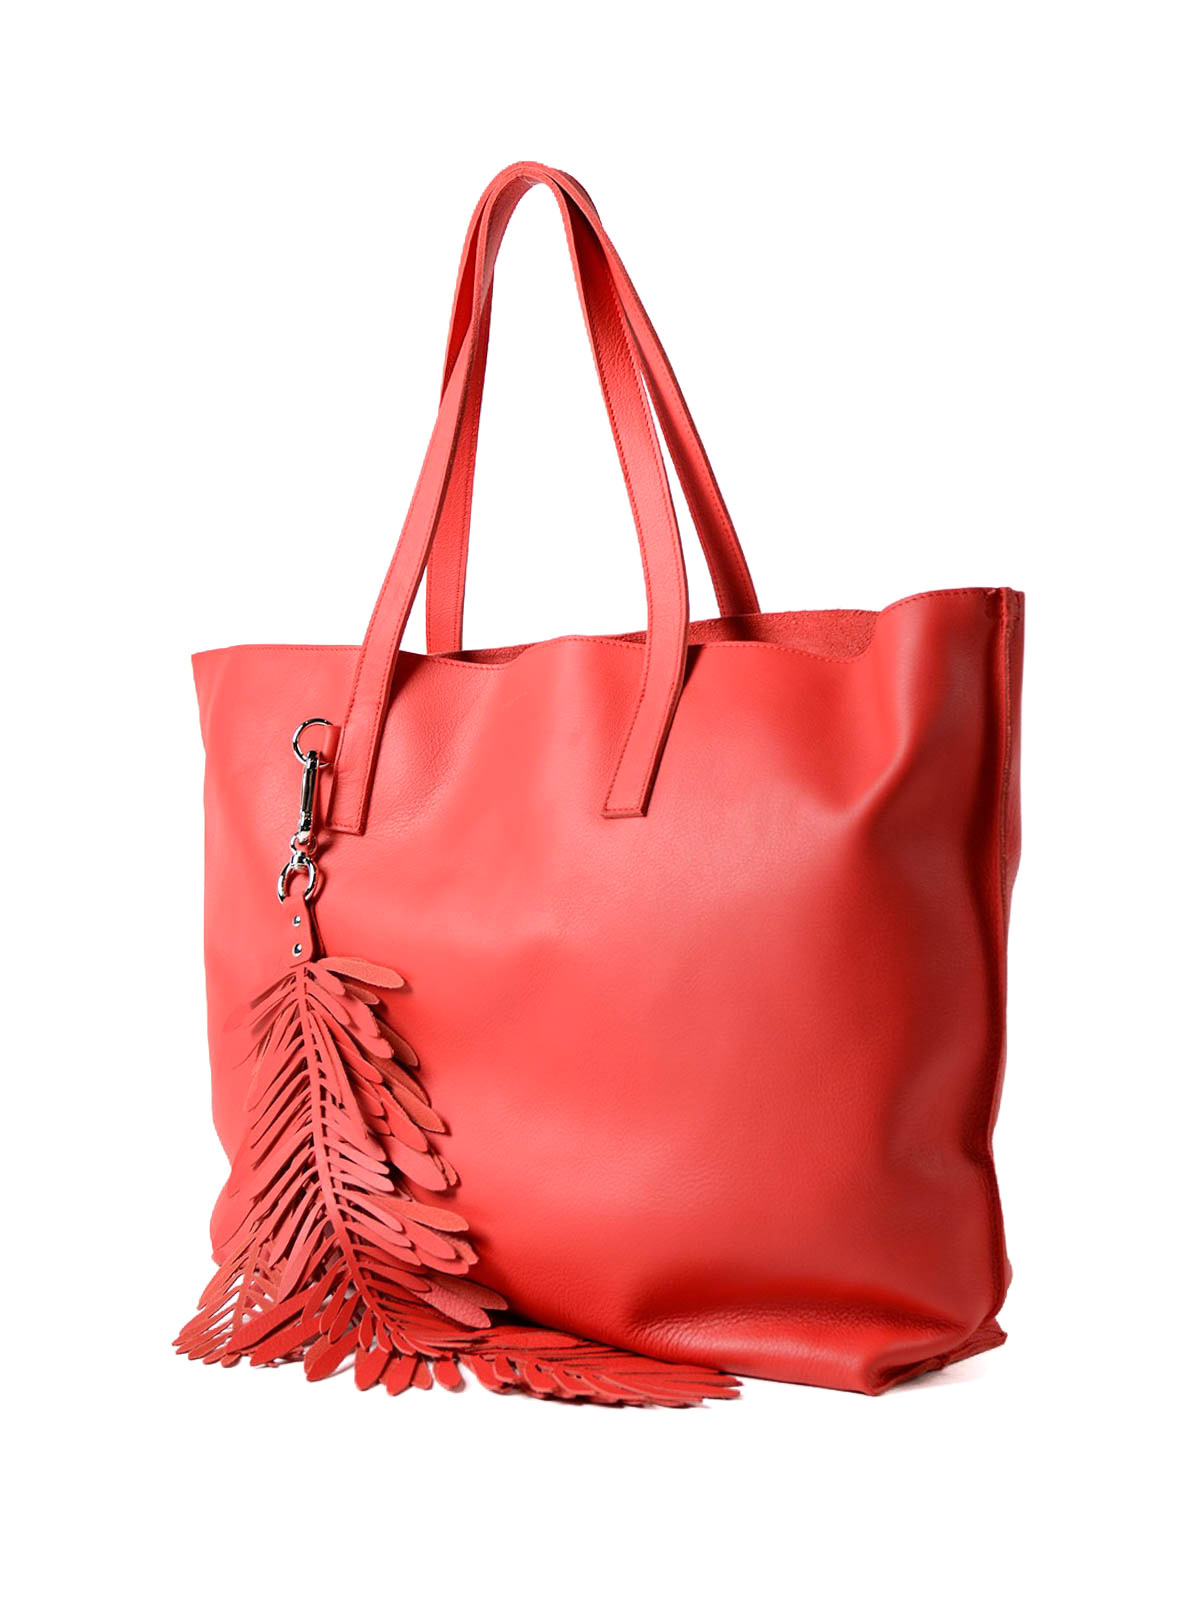 Parosh Red bag with charm lNMXV